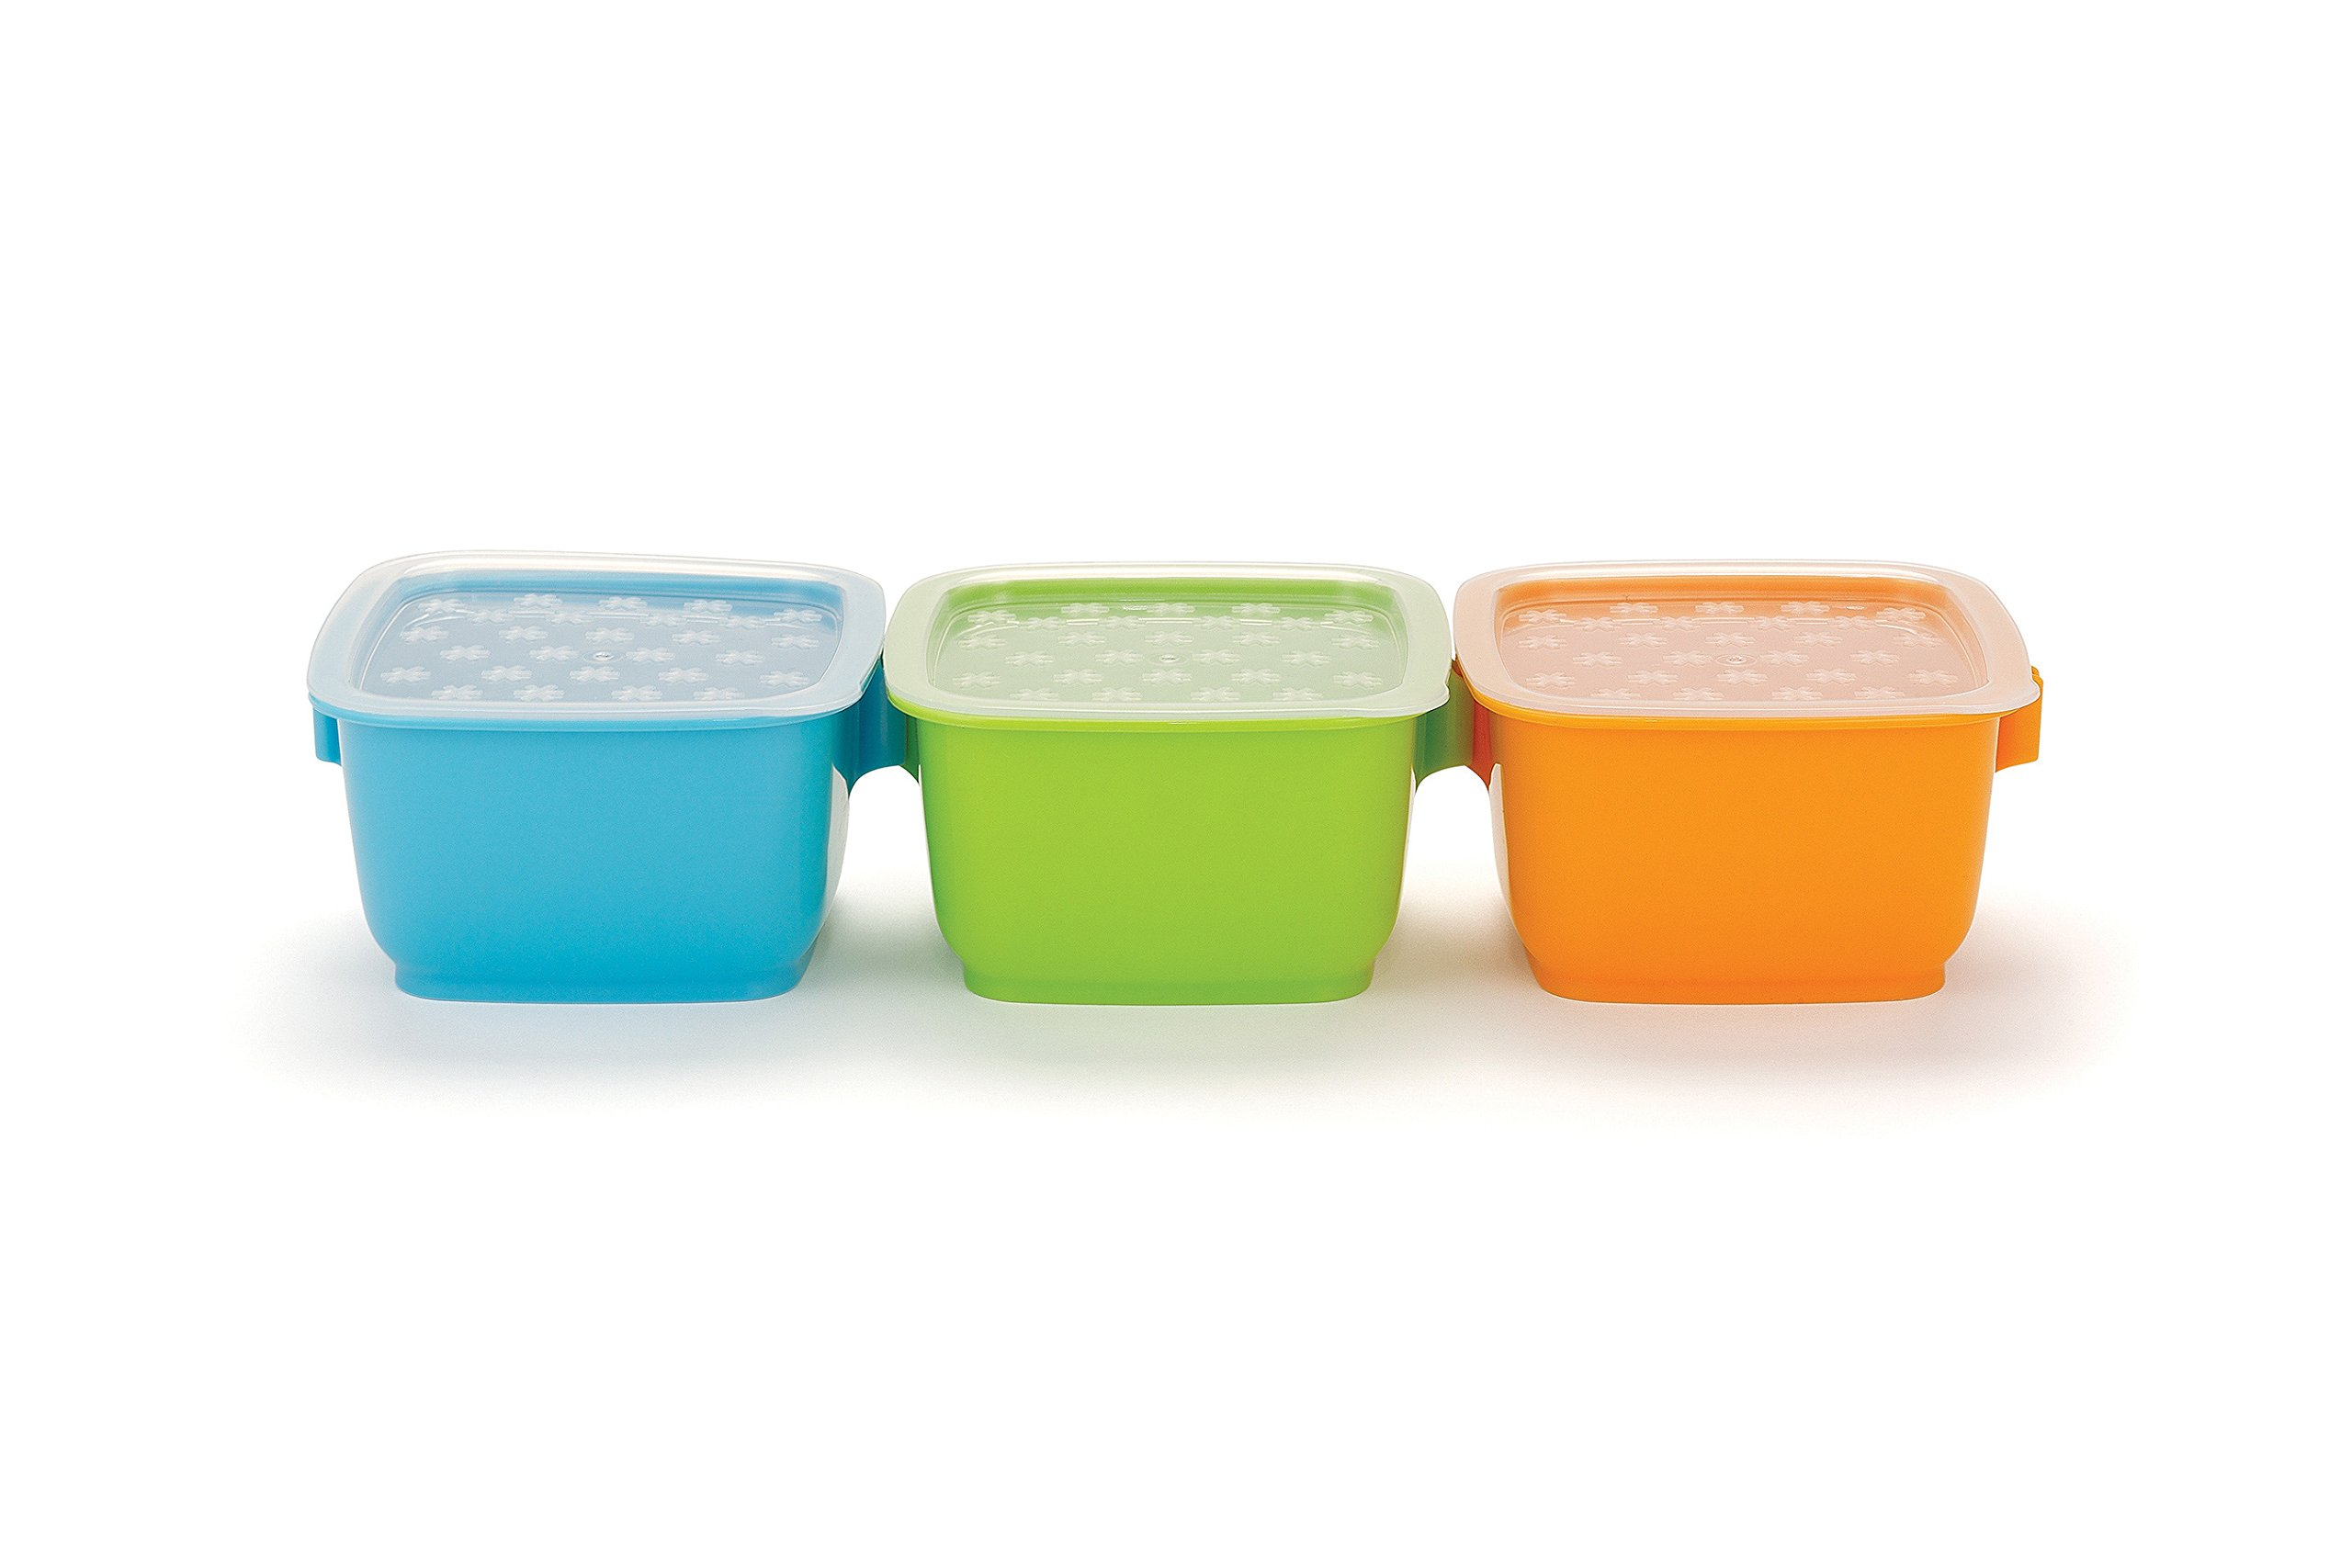 Skip Hop Baby Insulated 14-piece Bento Clix Mealtime Travel Kit, 3 Microwaveable Containers, Black